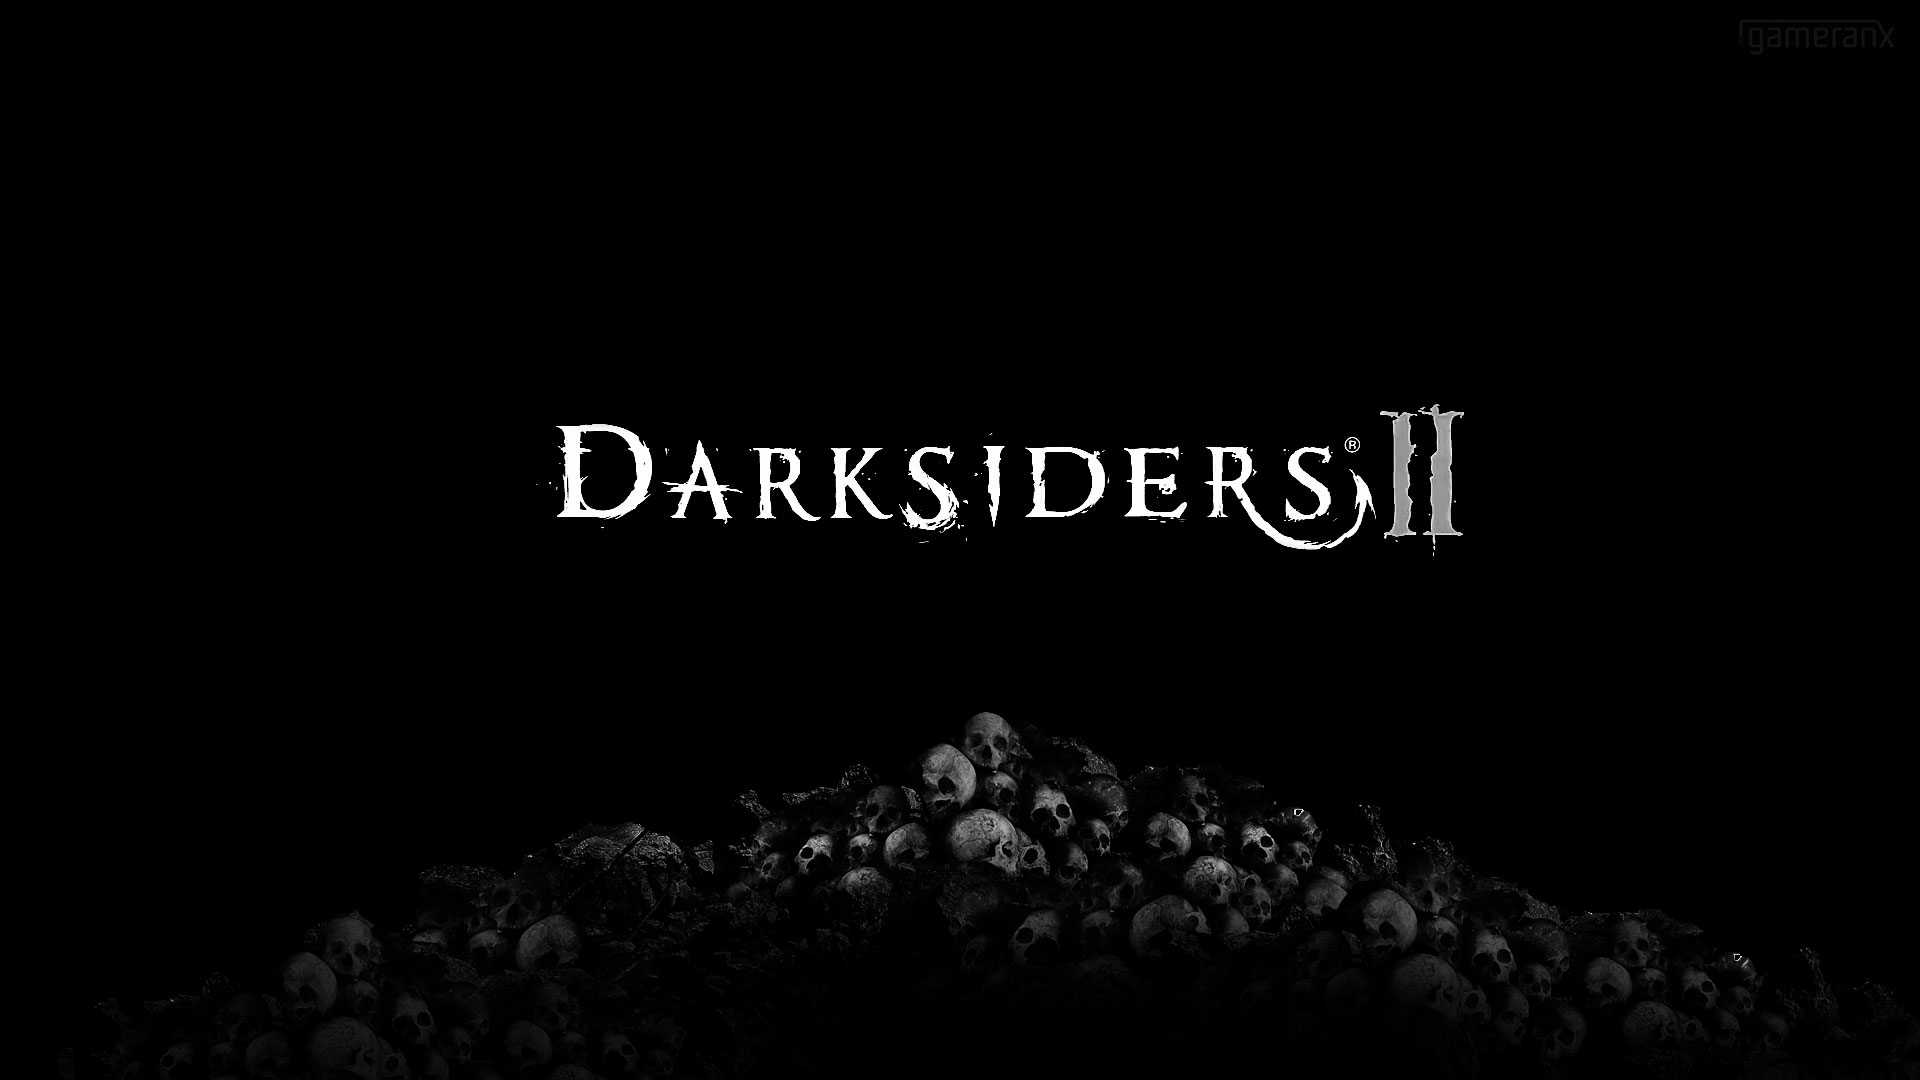 Darksiders 2 Wallpapers in HD Page 2 1920x1080